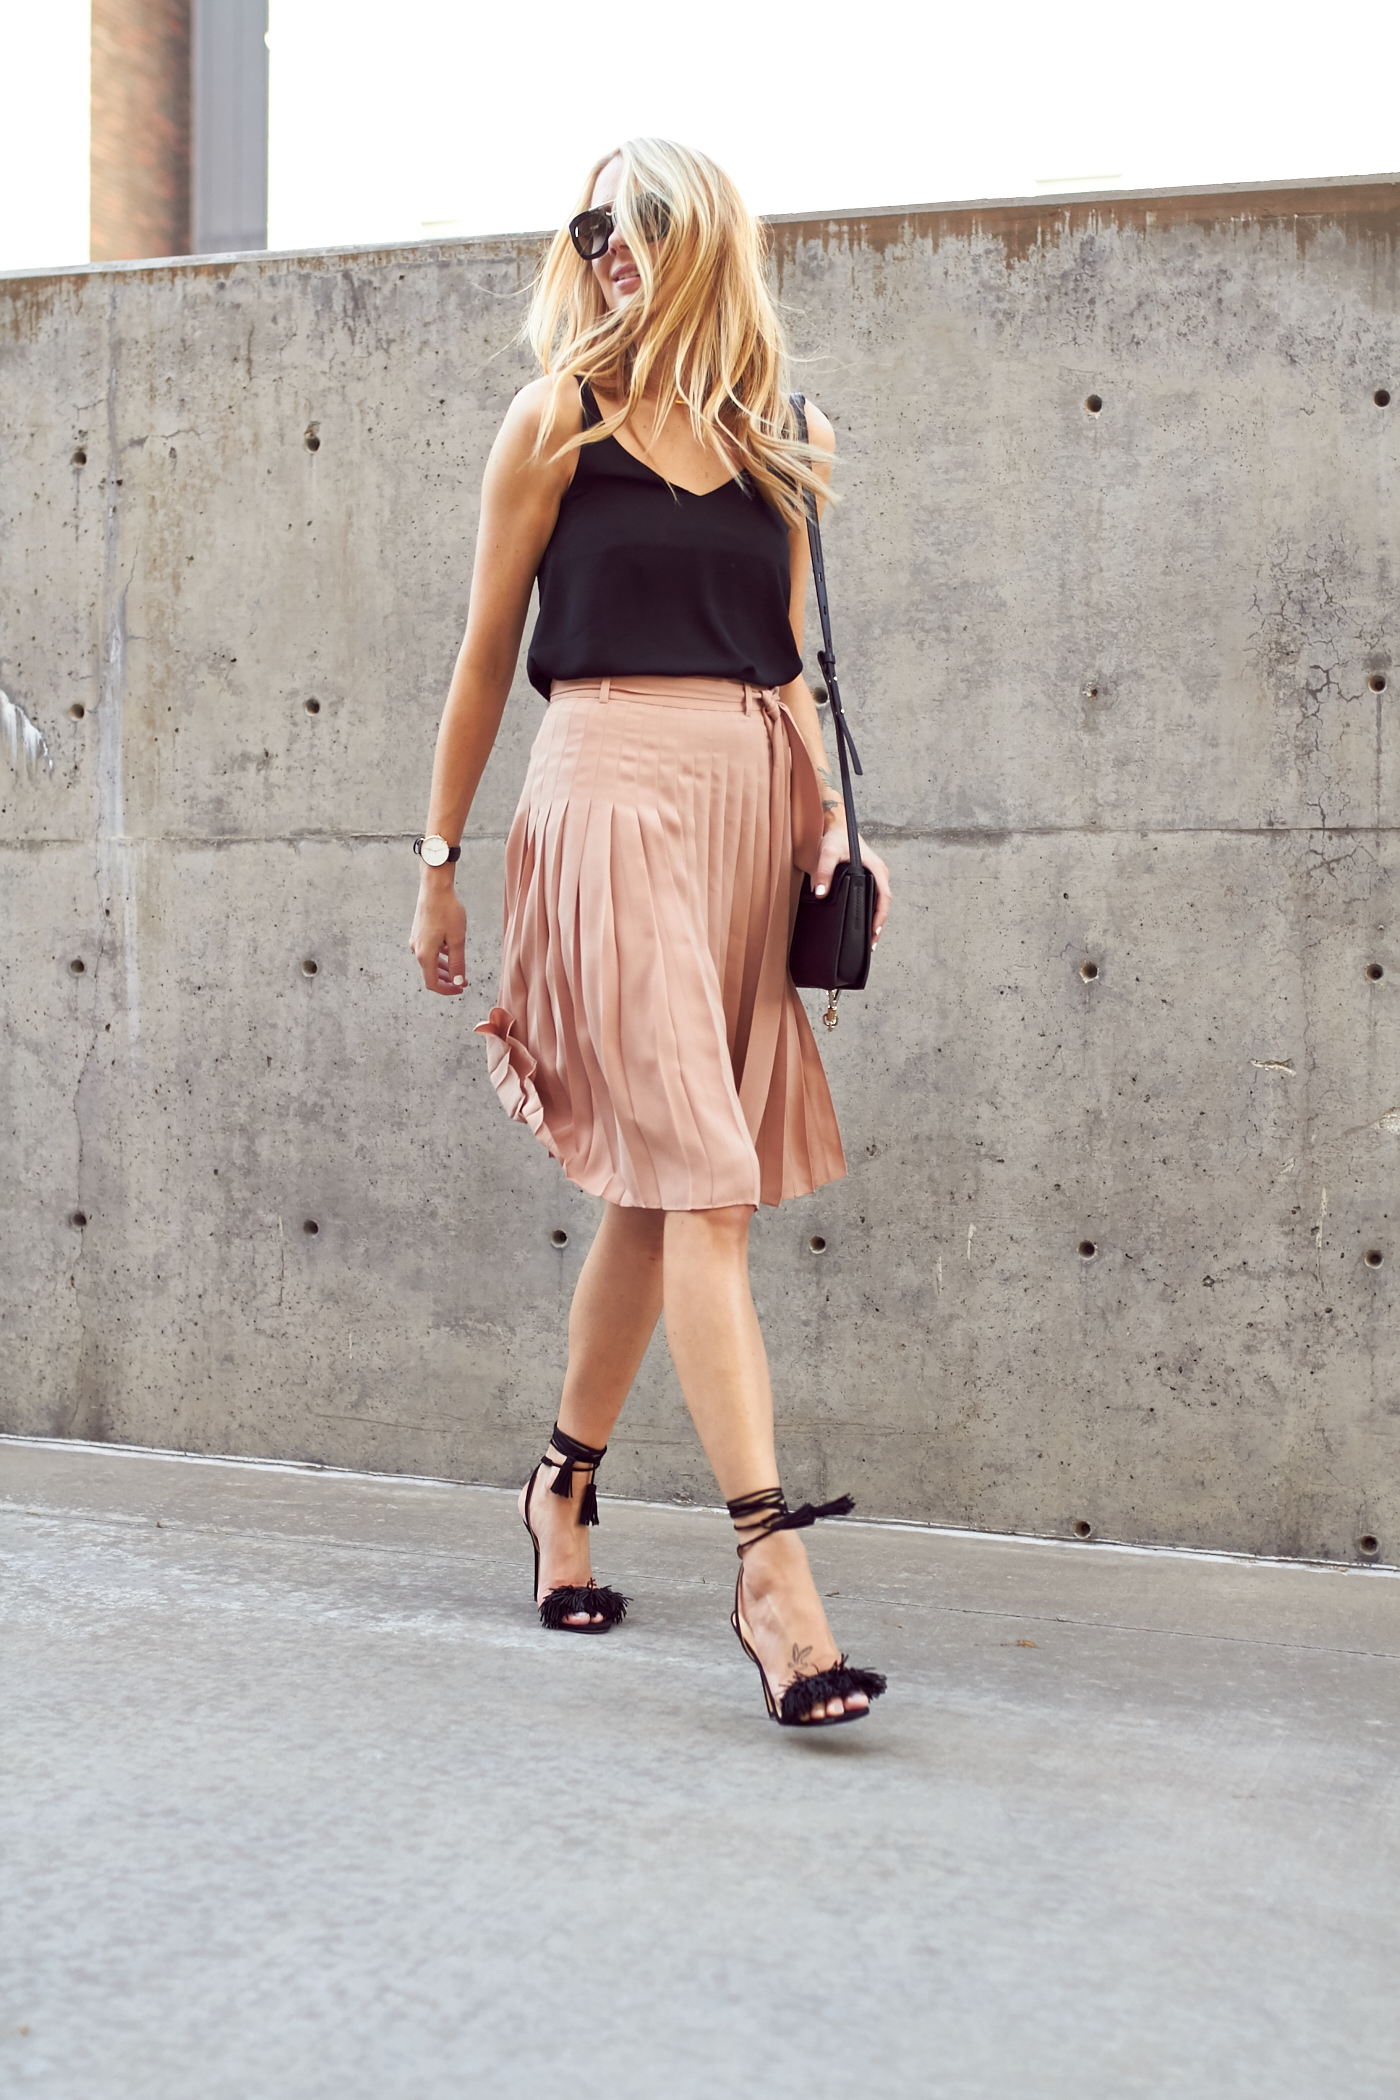 fashion-jackson-ann-taylor-pink-pleated-skirt-black-tank